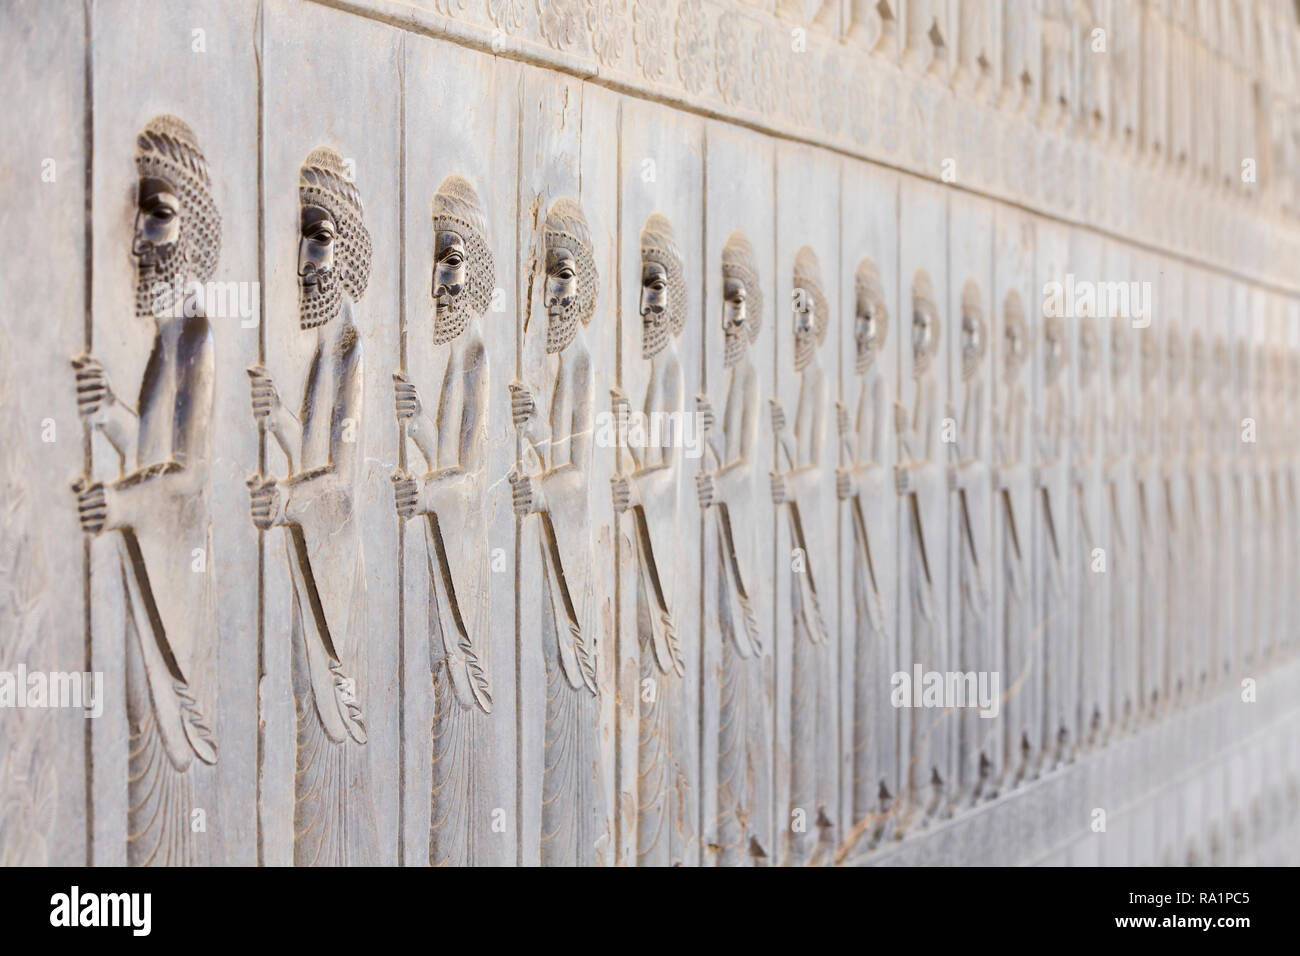 Bas reliefs on the walls of Apadana palace and staircase, Persepolis, Iran - Stock Image